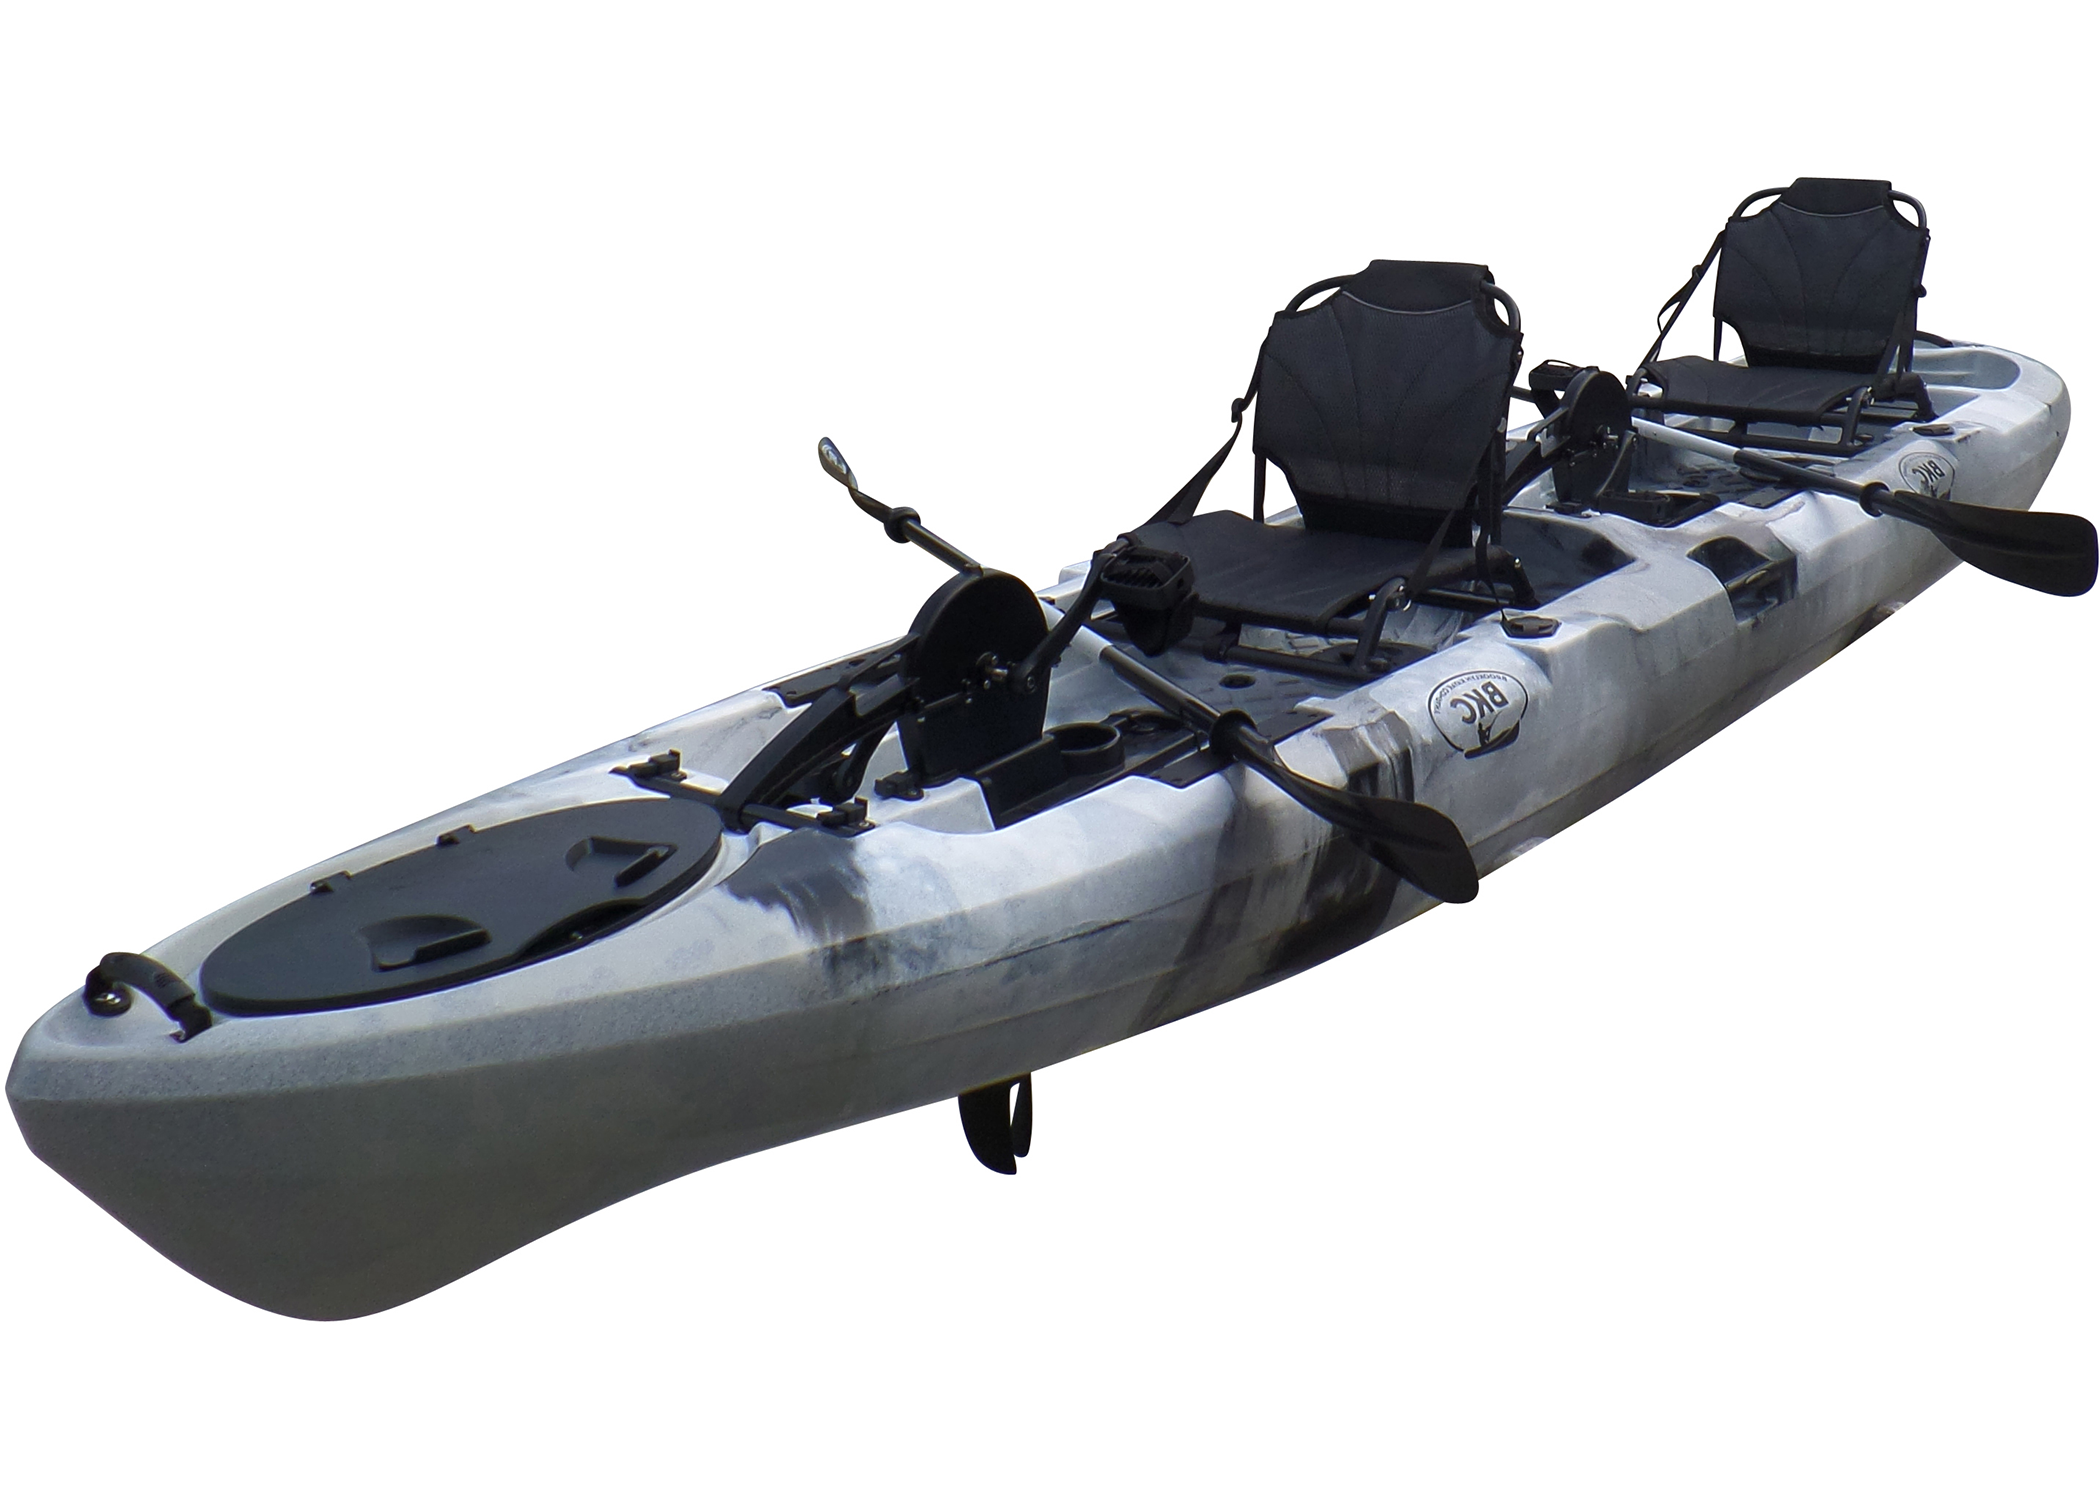 BKC PK14 14' Tandem Sit On Top Pedal Drive Kayak W/ Rudder System, 2 Paddles, 2 Upright Back Support Aluminum Frame Seats 2 Person Foot Operated Kayak - Brooklyn Kayak Company